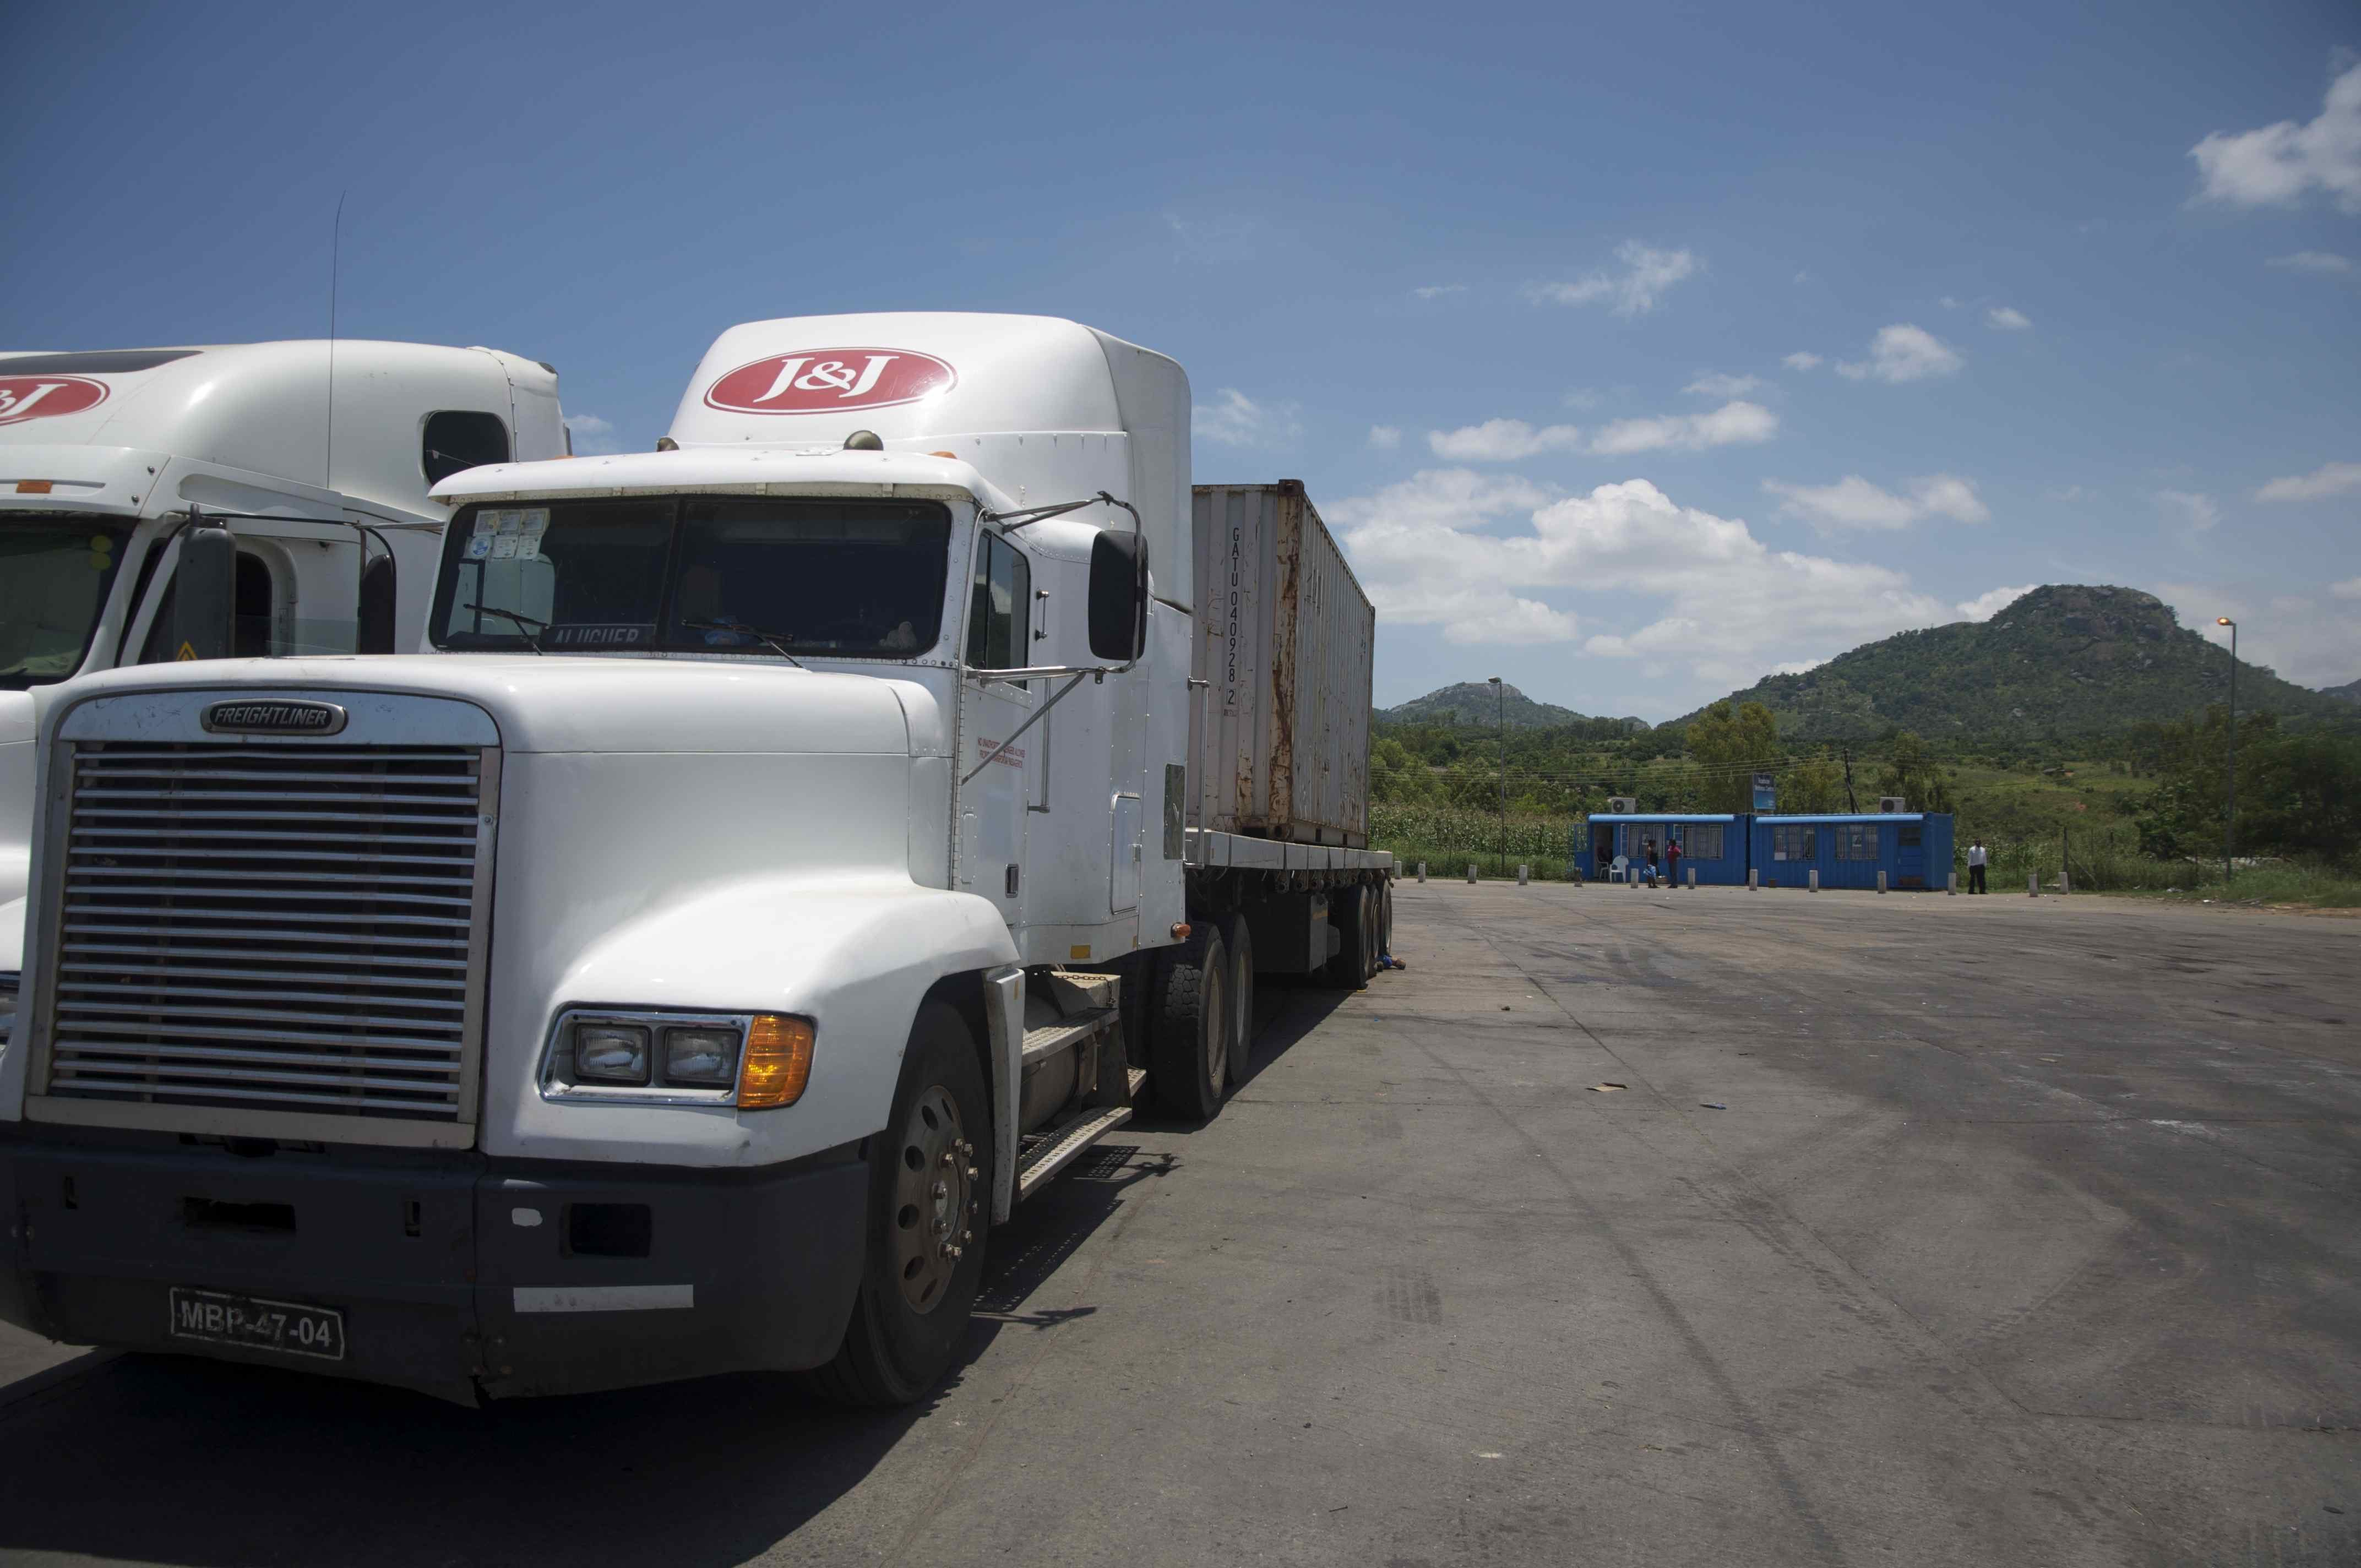 Truck parked at North Star Alliance Mwanza Clinic in Malawi